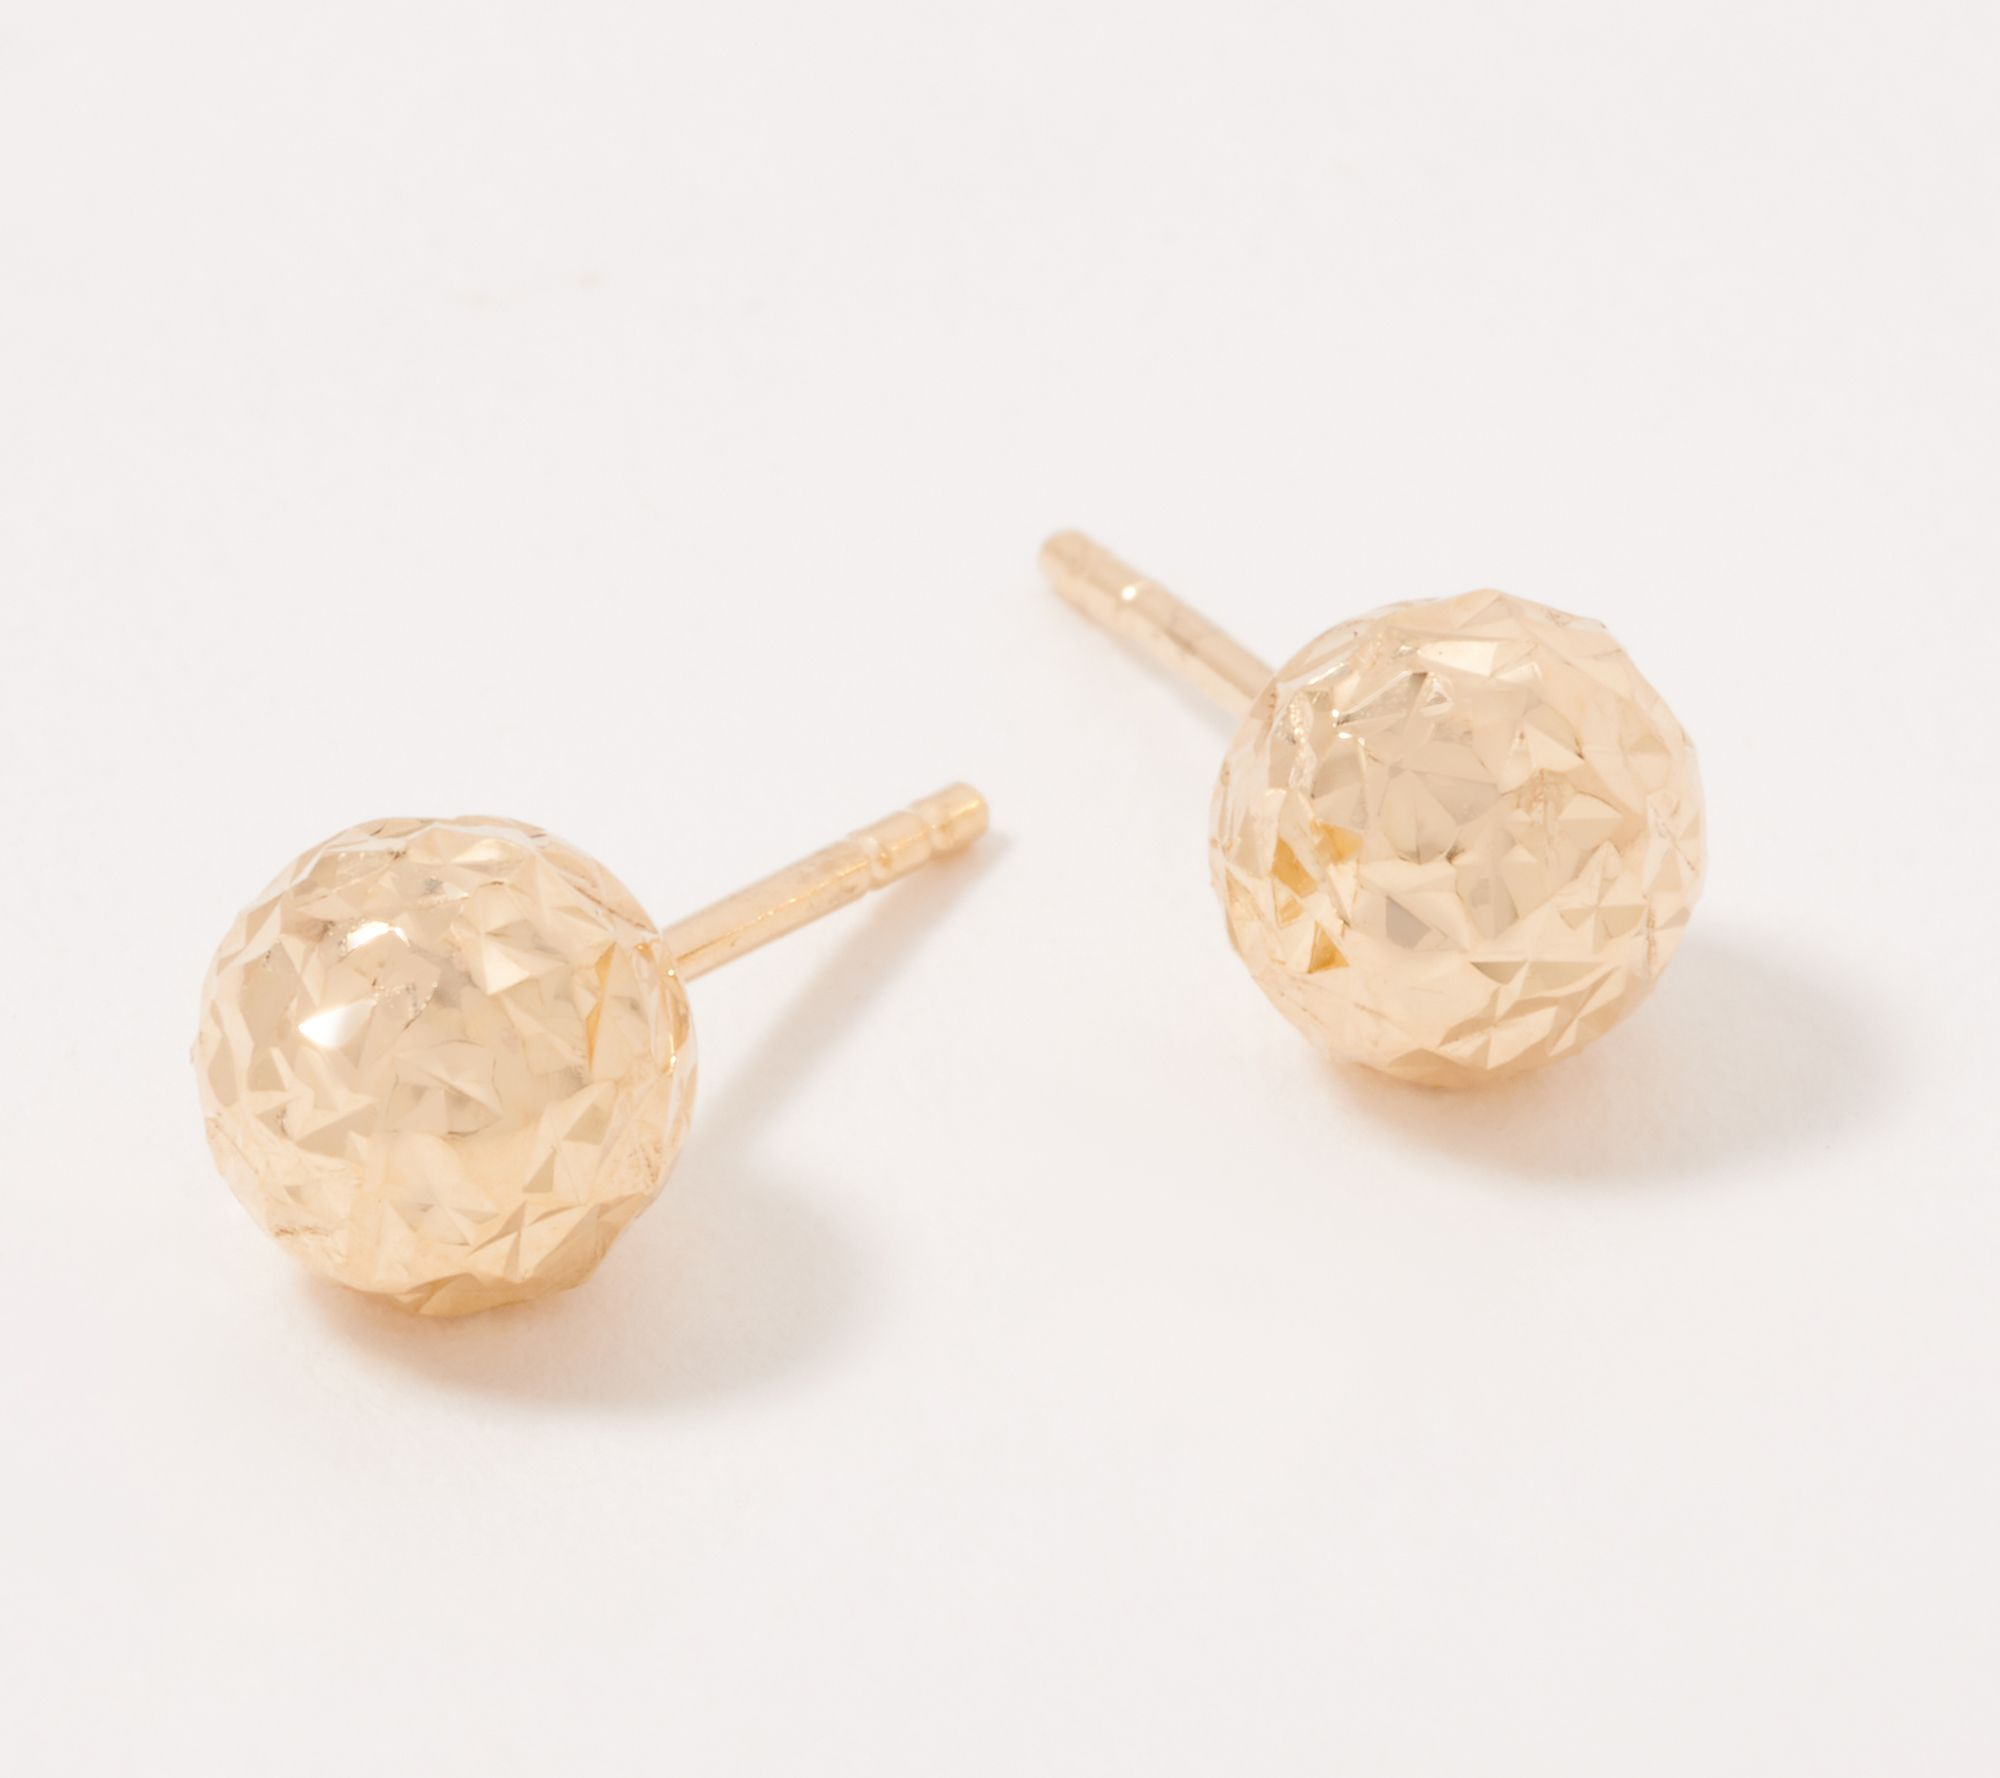 14K Gold Polished and Diamond-Cut 8MM Ball Post Earrings